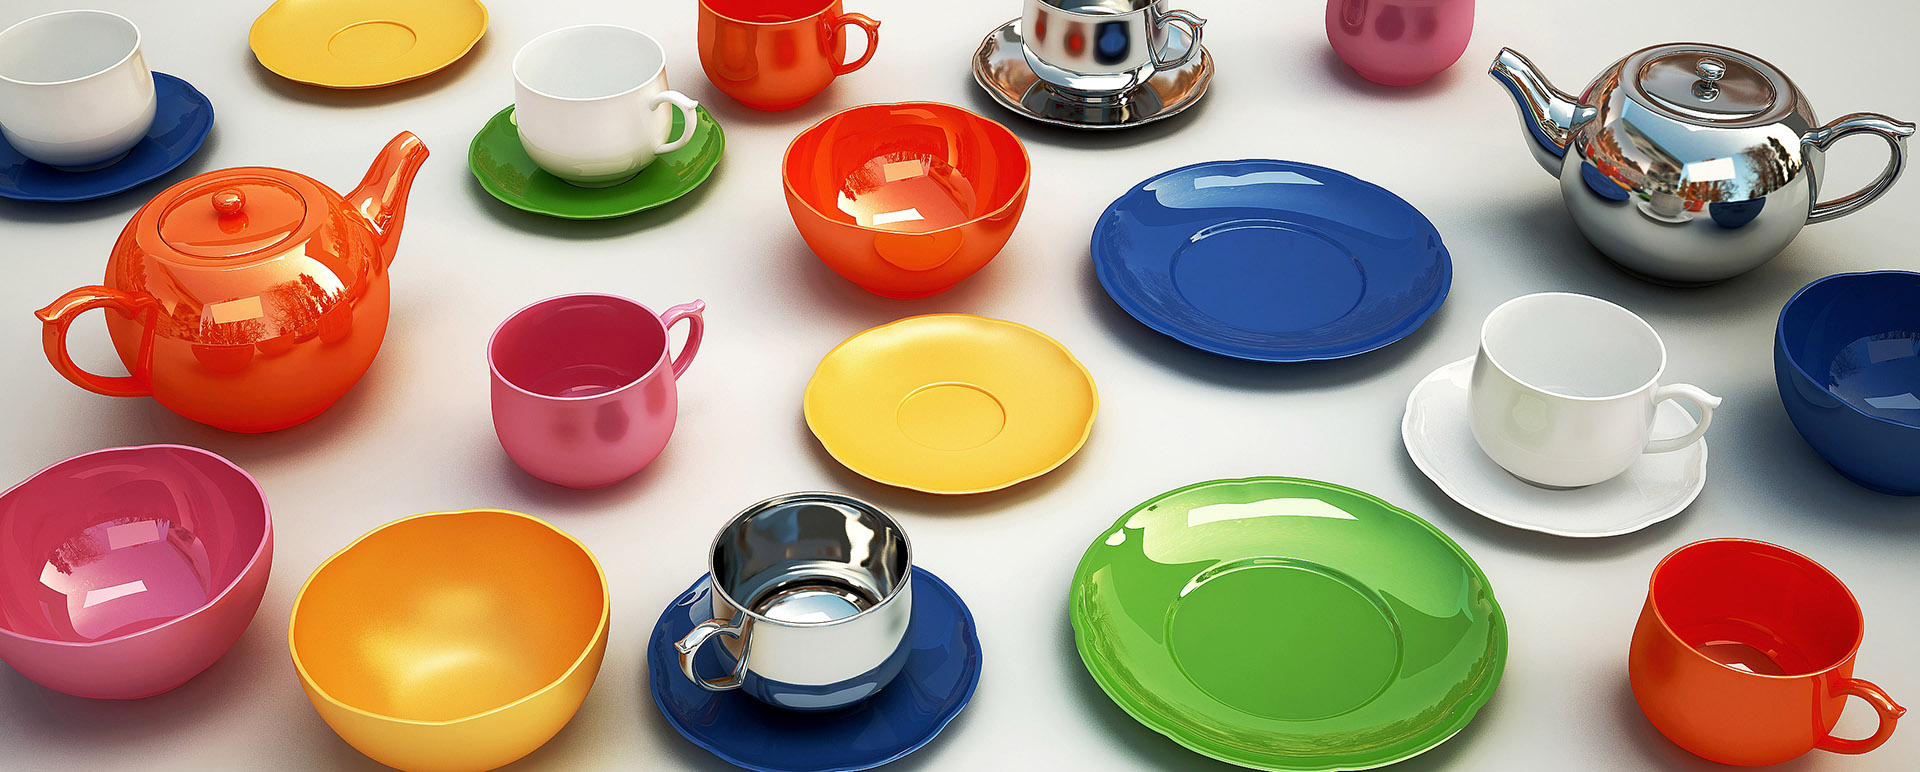 Dinnerware Render 2